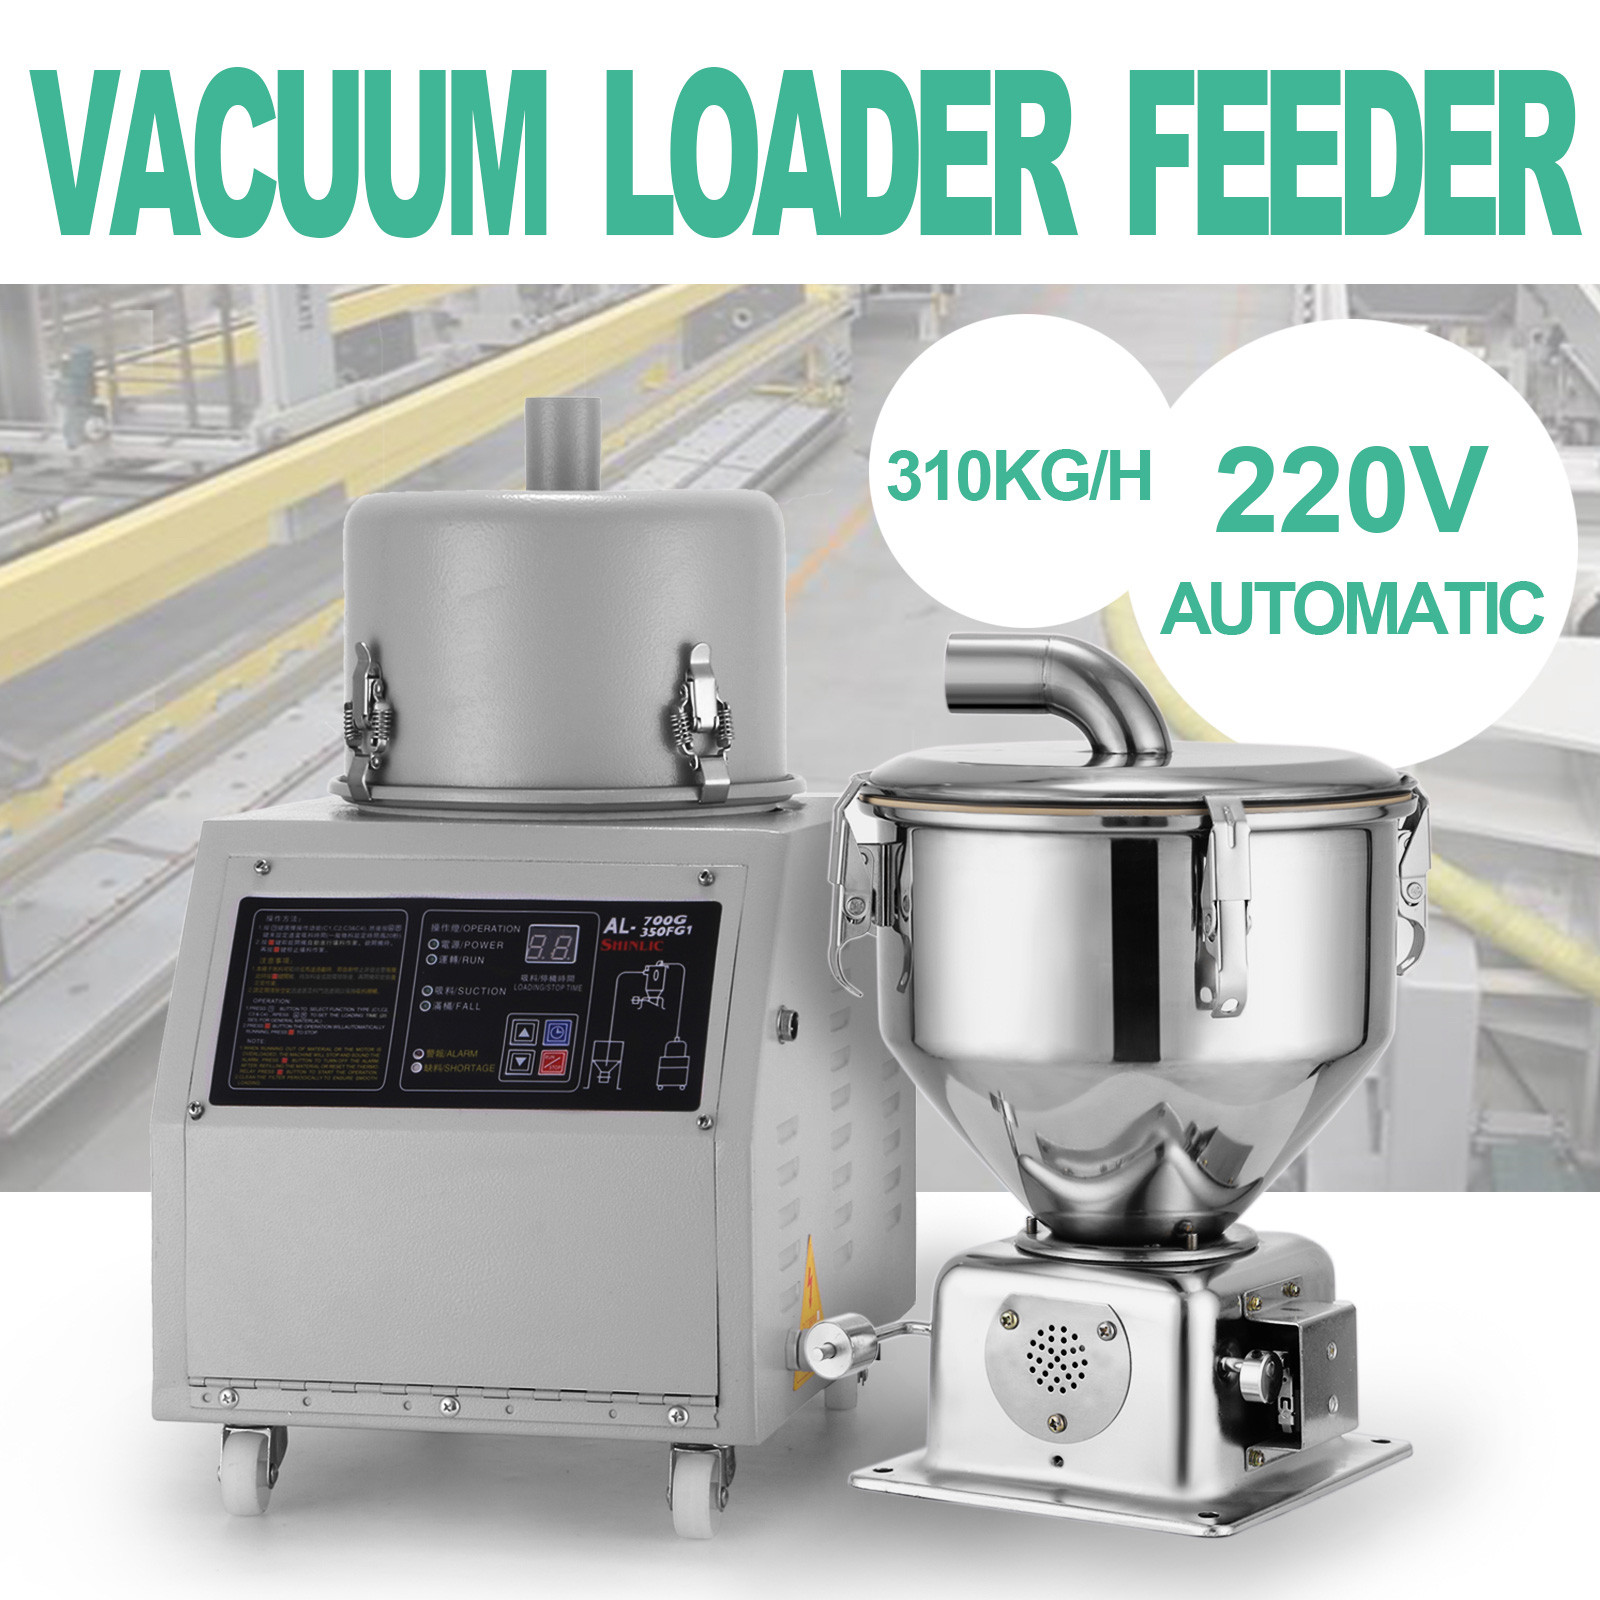 700G-Vacuum-Split-Type-220V-Suction-Machine-Automatic-Loader-Feeder-Brand-New